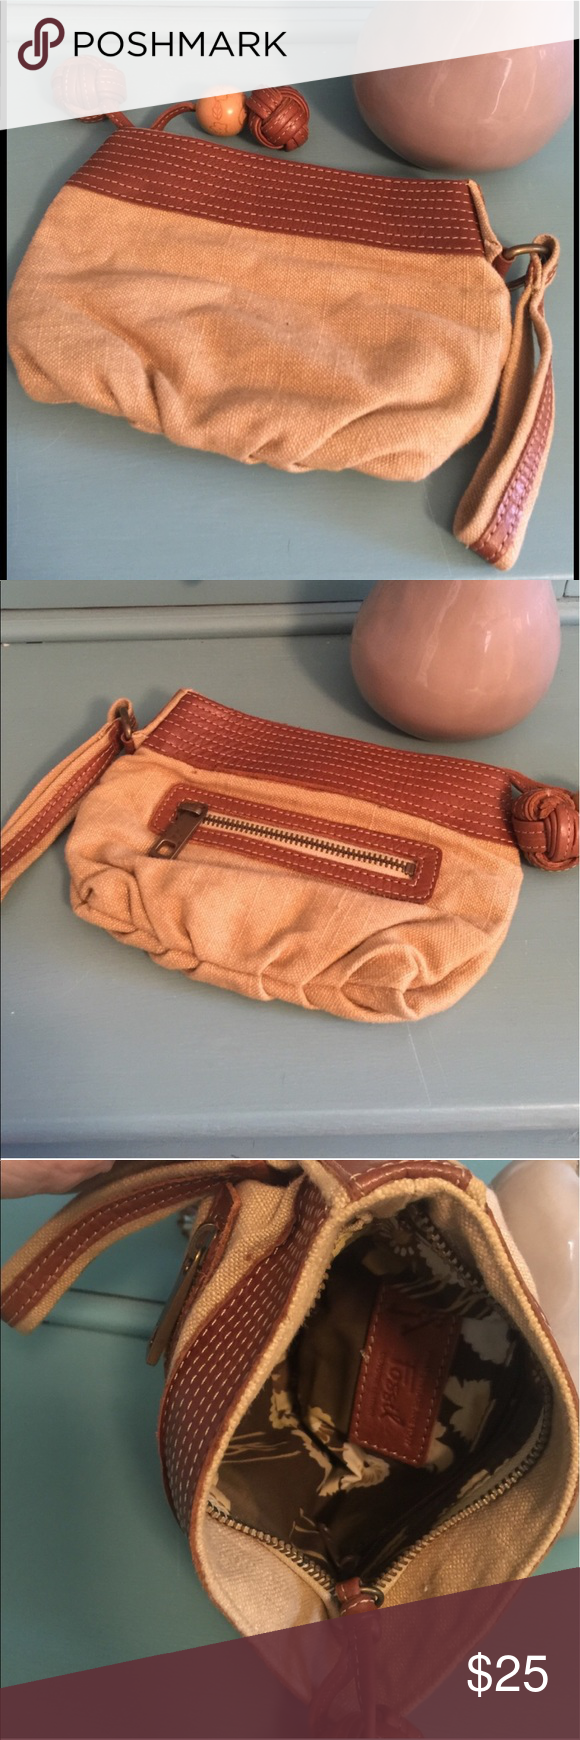 "Fossil Canvas Wristlet GUC Fossil Tan Canvas Wristlet with leather trim around the top with zipper closure.  Small exterior zipper pocket as well as a Zipper pocket on the interior. The leather on one side of the trim as shown in the images is turning up slightly.  Measures 8"" x 5.5"".  Fits an iPhone 6 Plus.   Perfect for any concerts where you don't want to take a large purse or going out downtown.  Just take the few things you do go and your good to go. Fossil Bags Clutches & Wristlets"